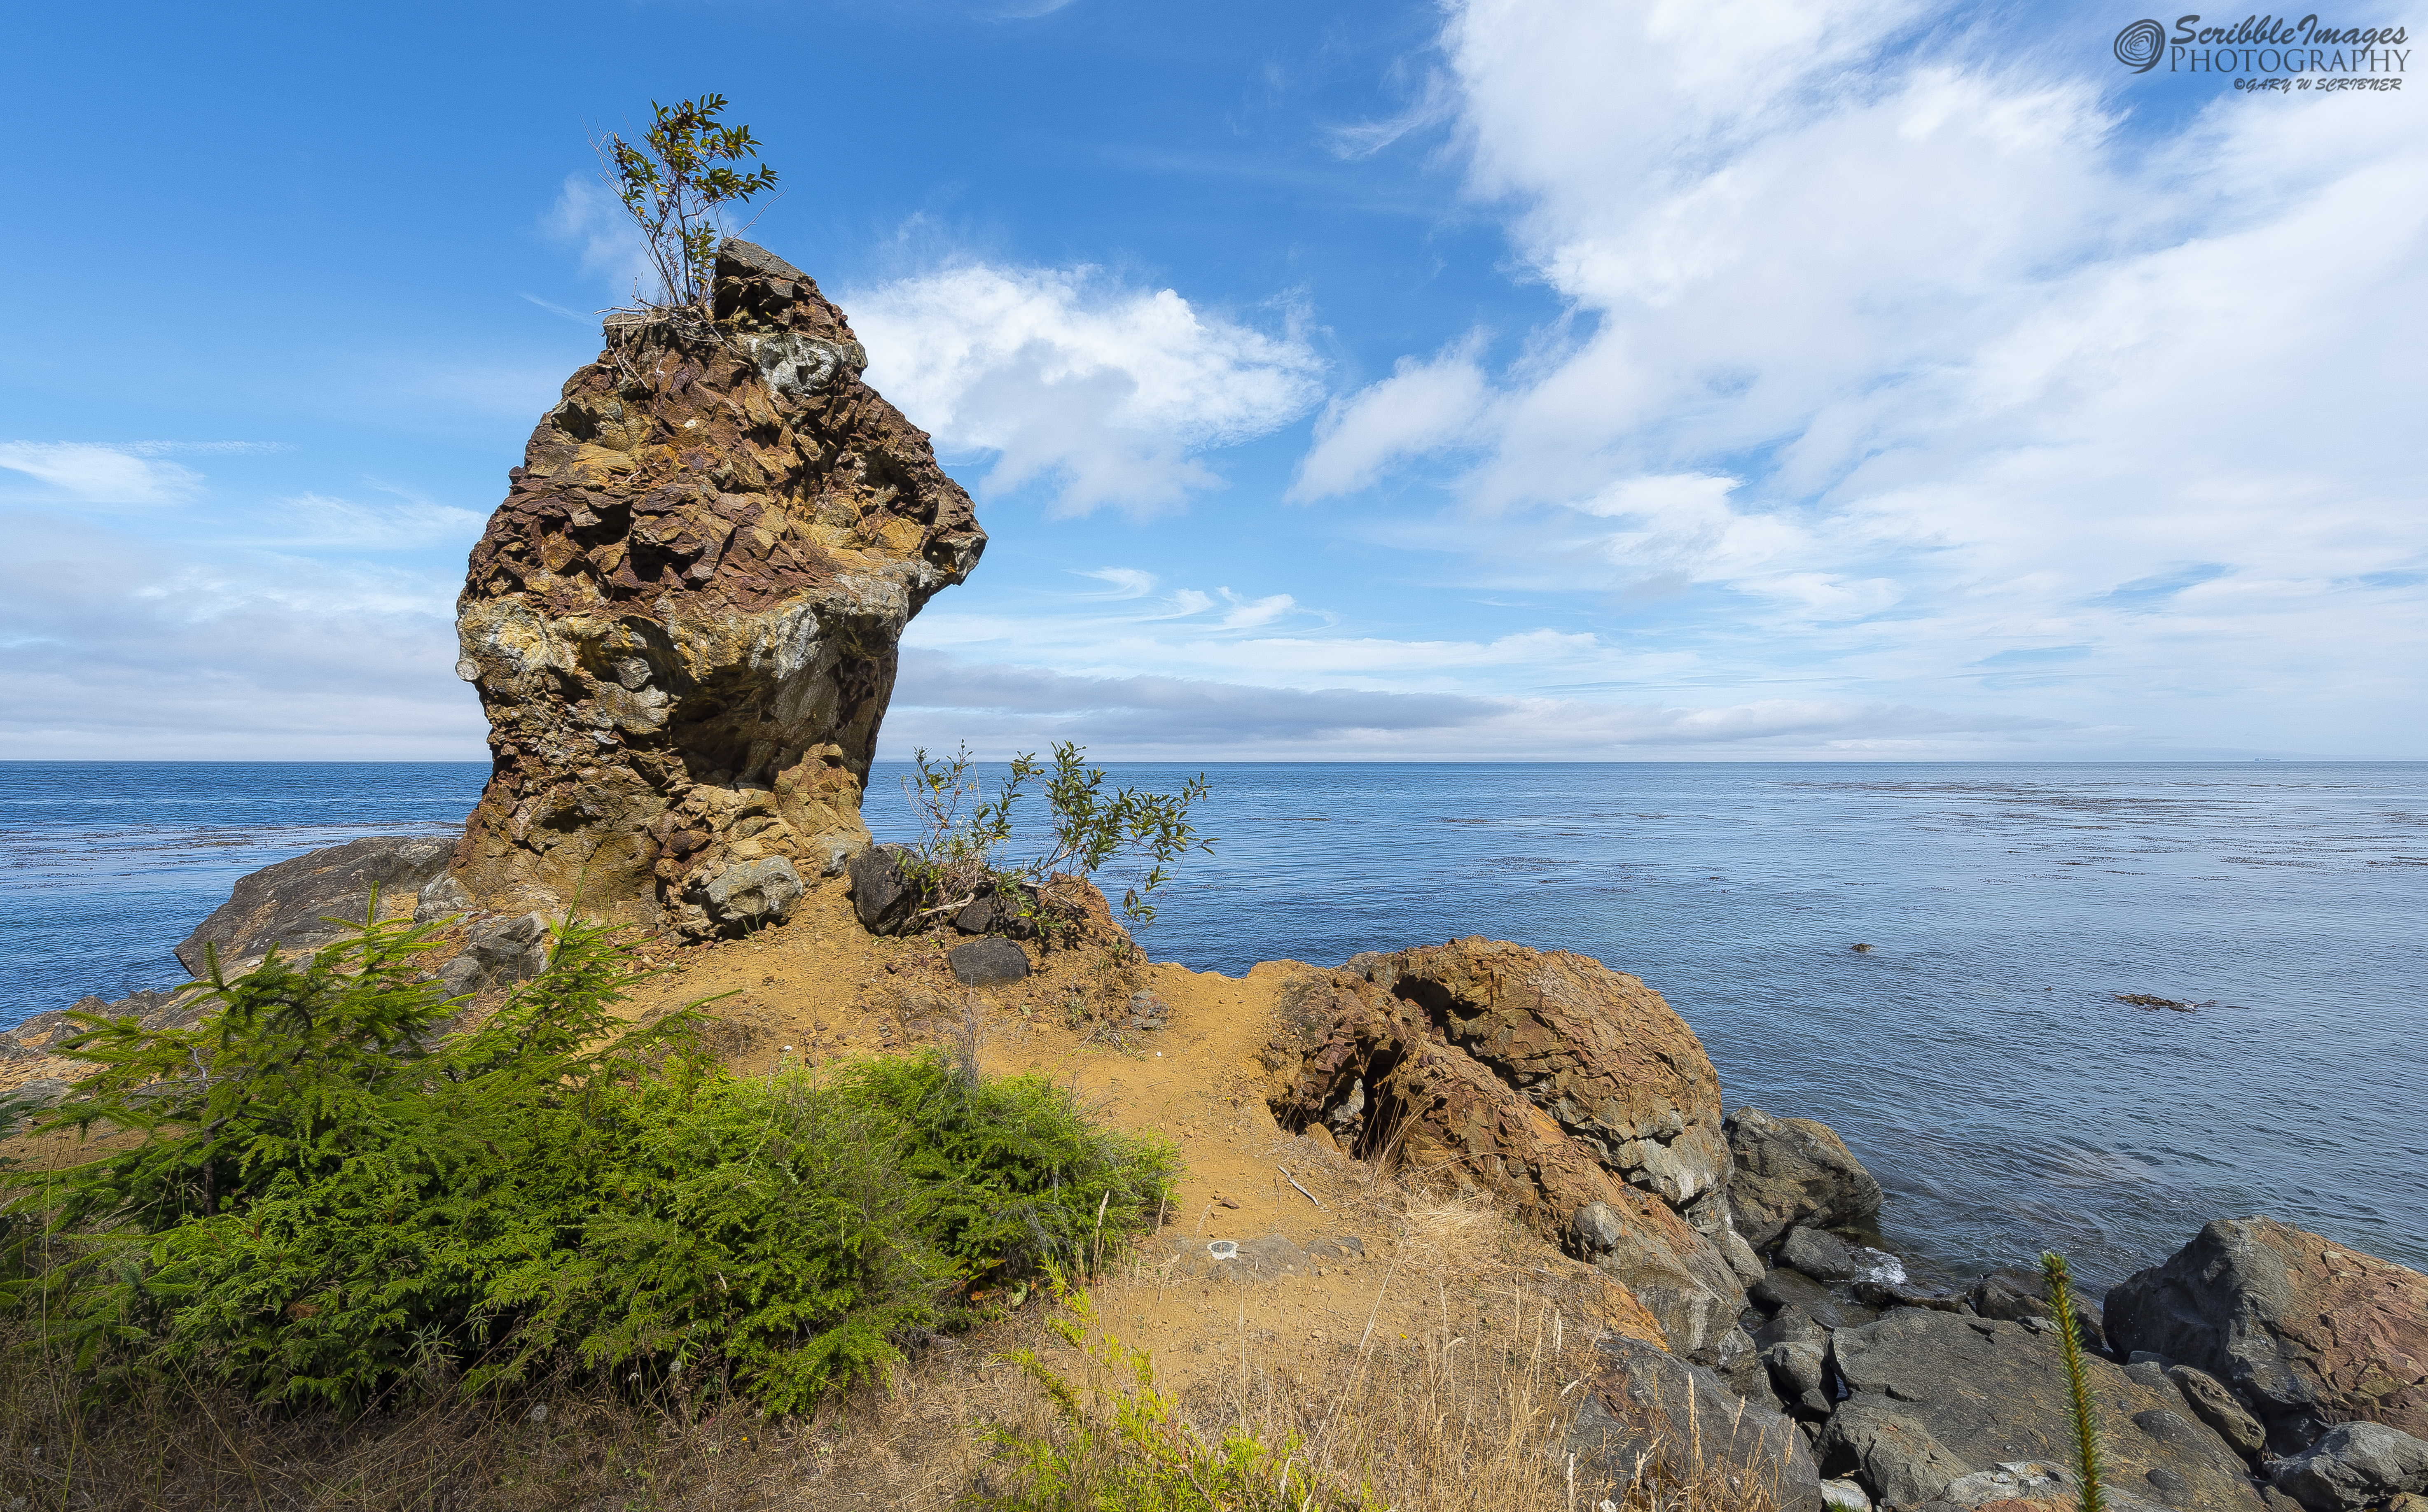 Formations on Route to Cape Flattery